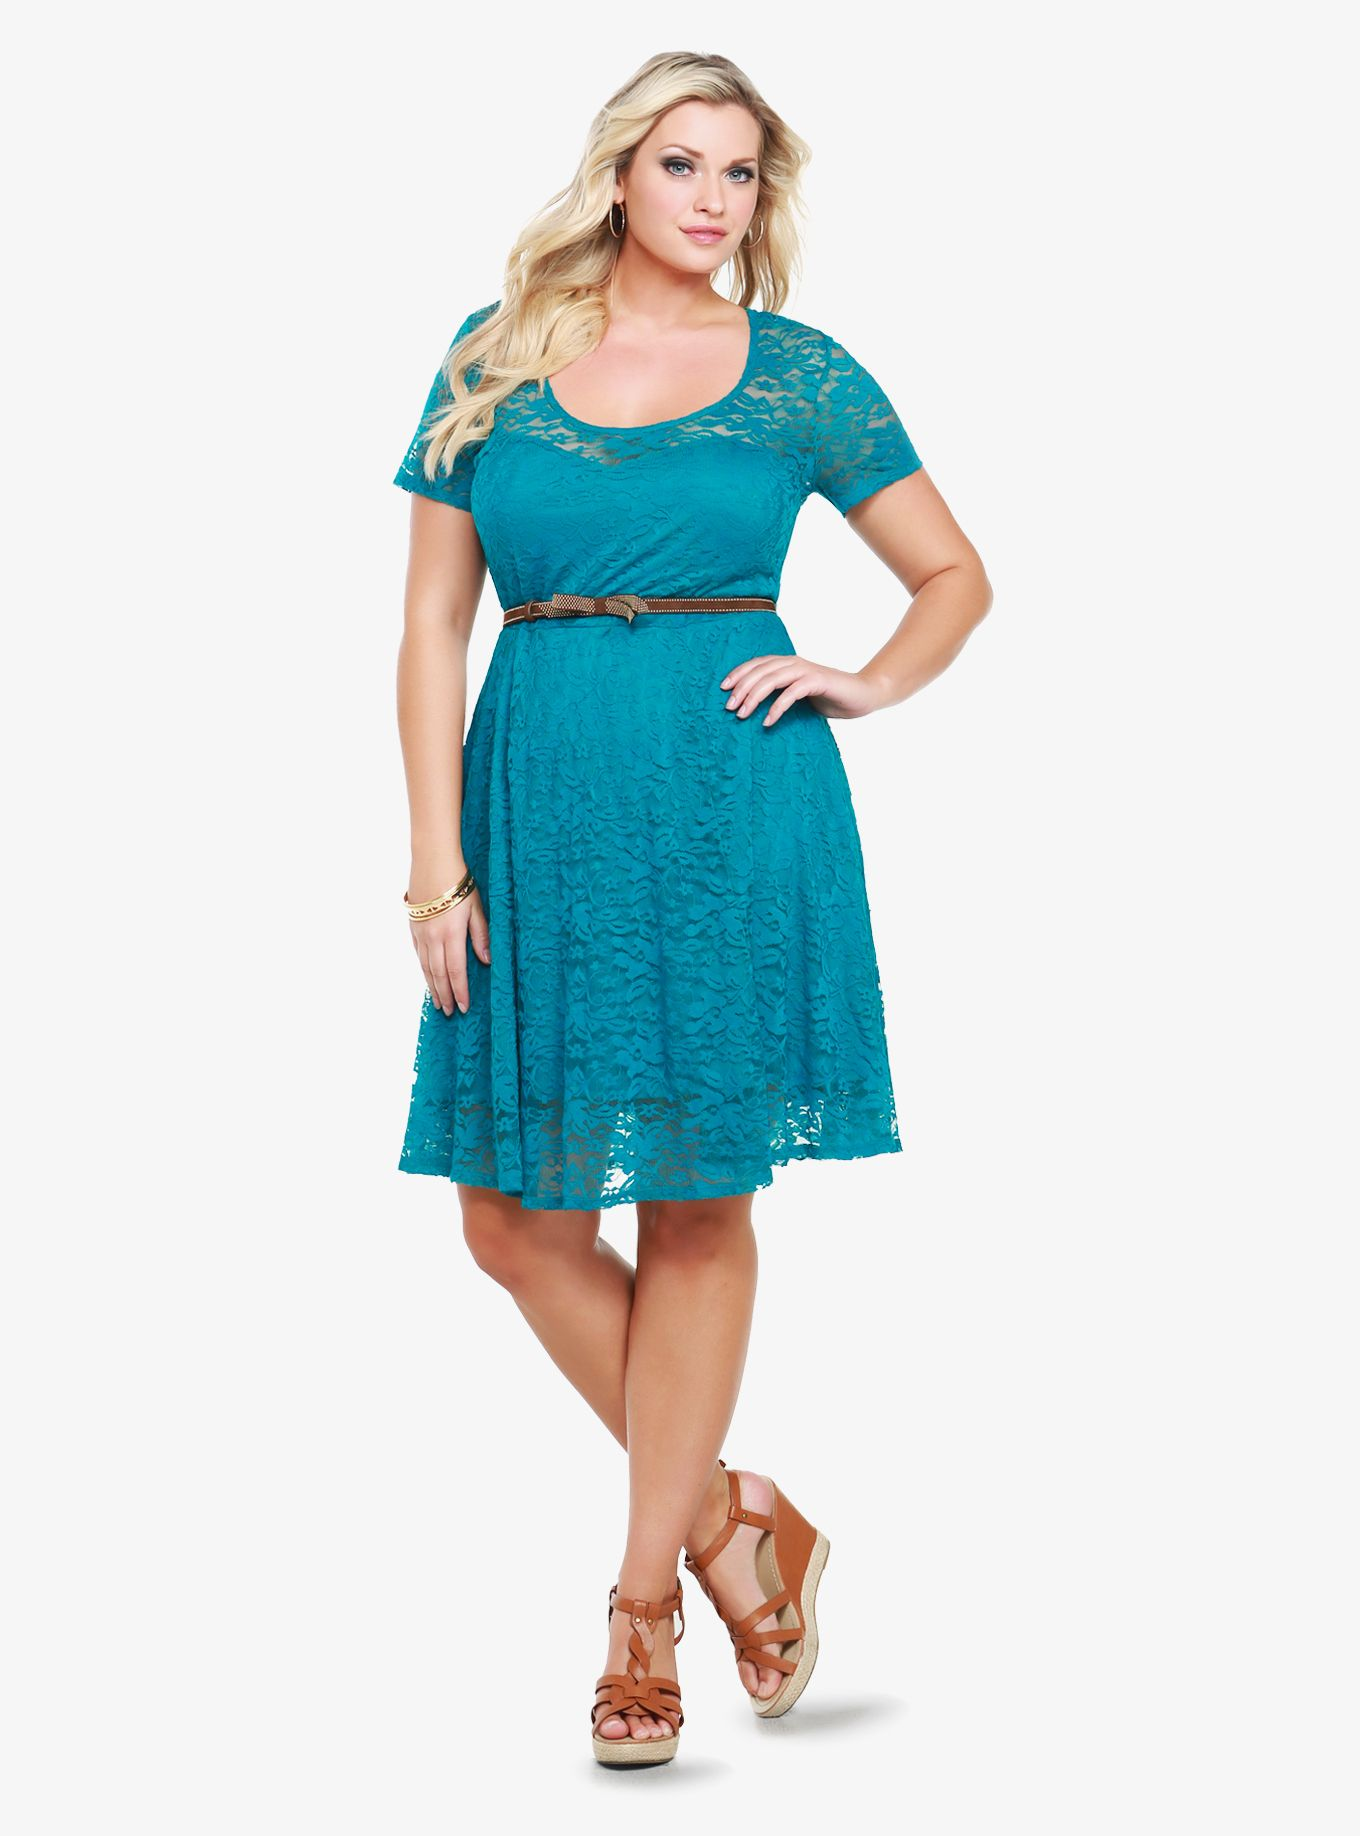 Wedding dresses for full figures  Covered in floral lace this teal dress has a sweetheart neckline